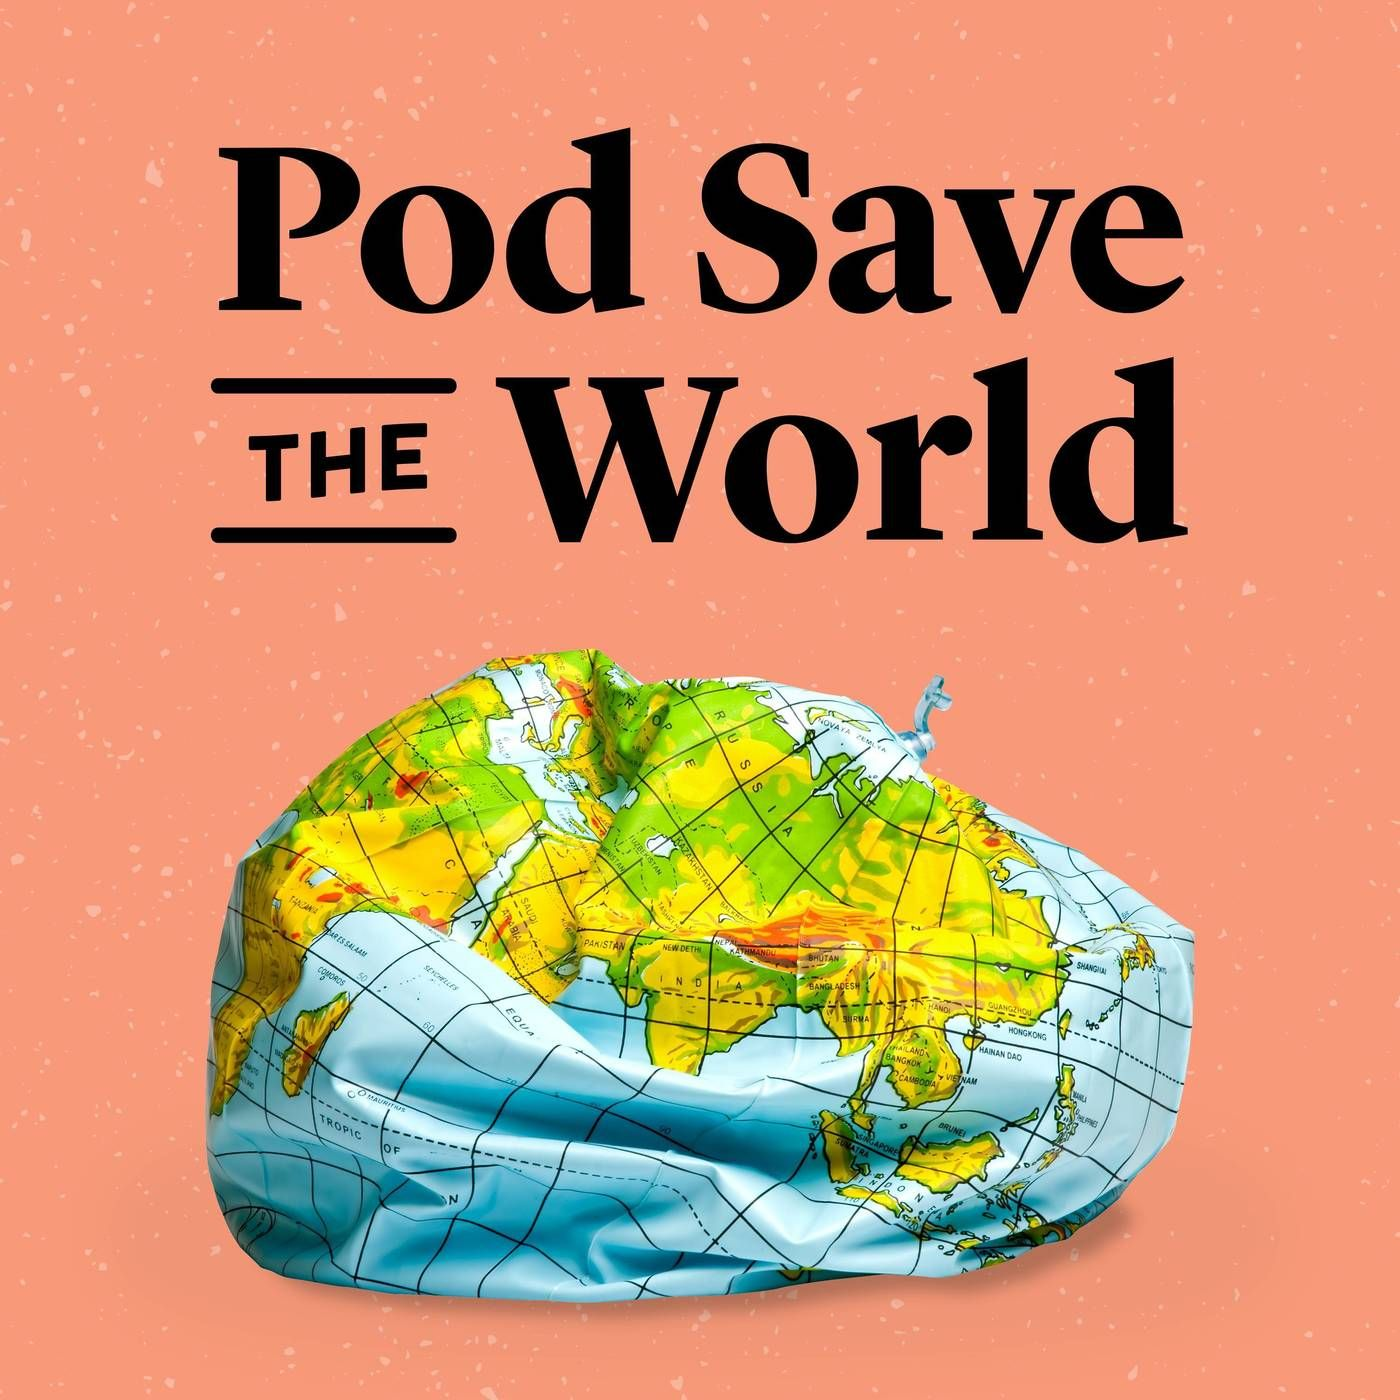 Image of Pod Save the World podcast